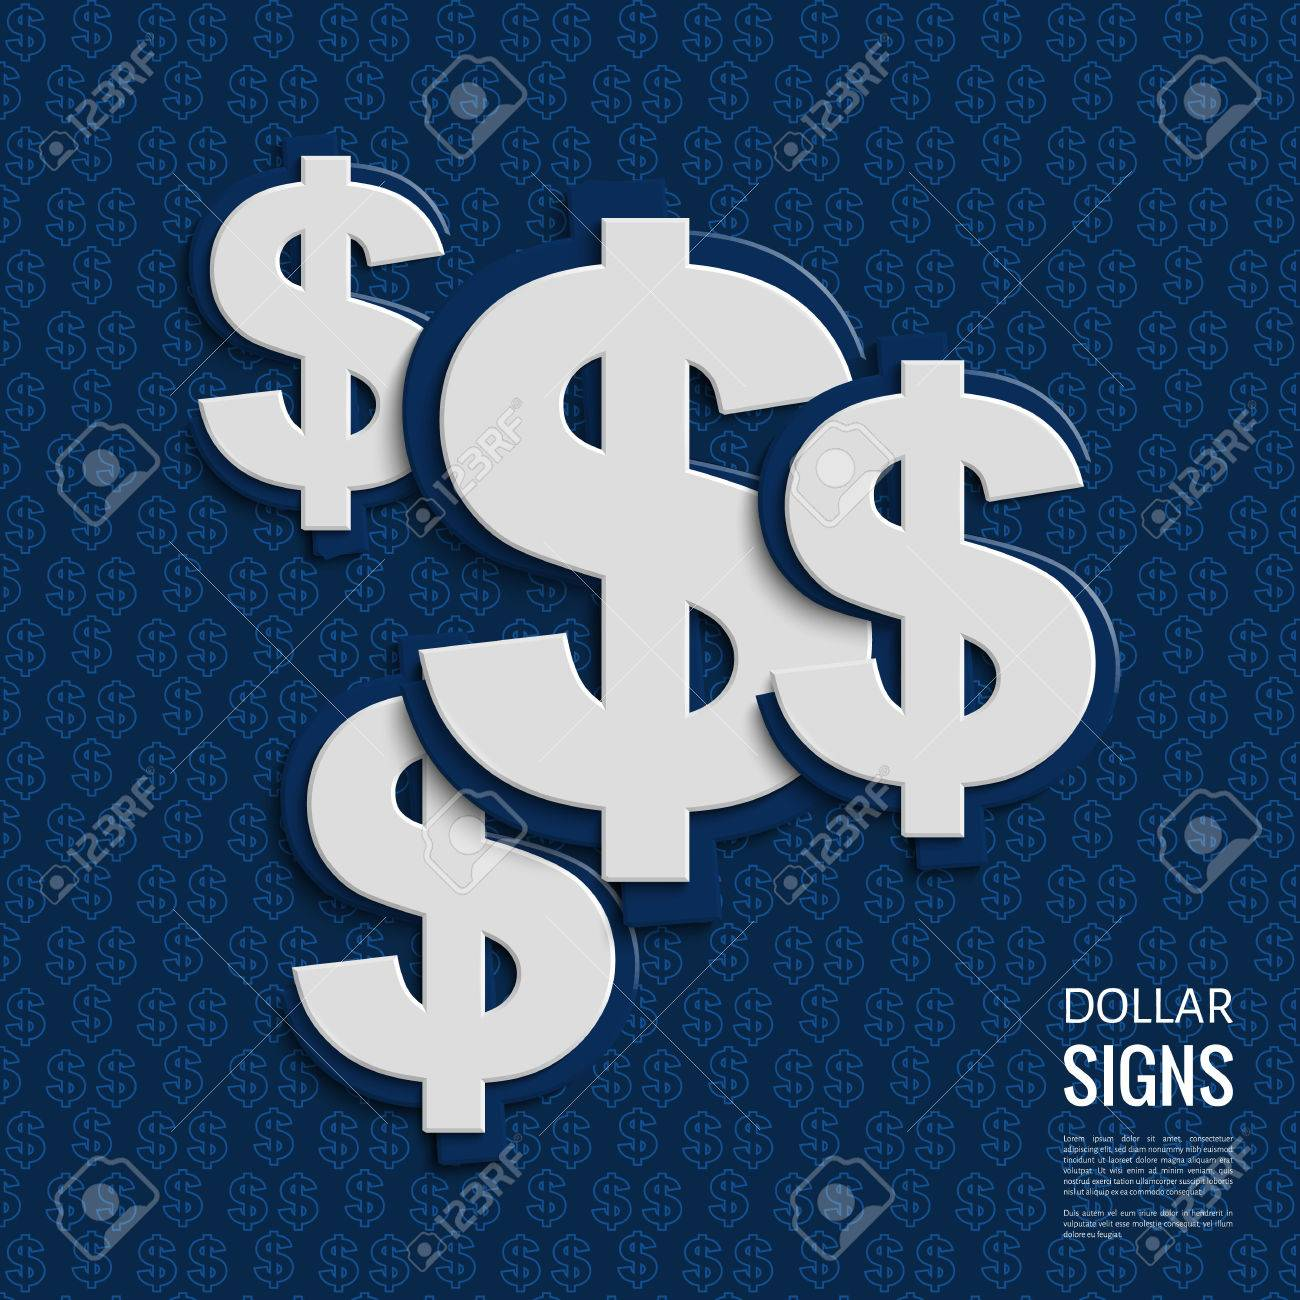 Dollar signs on blue background. - 31830726